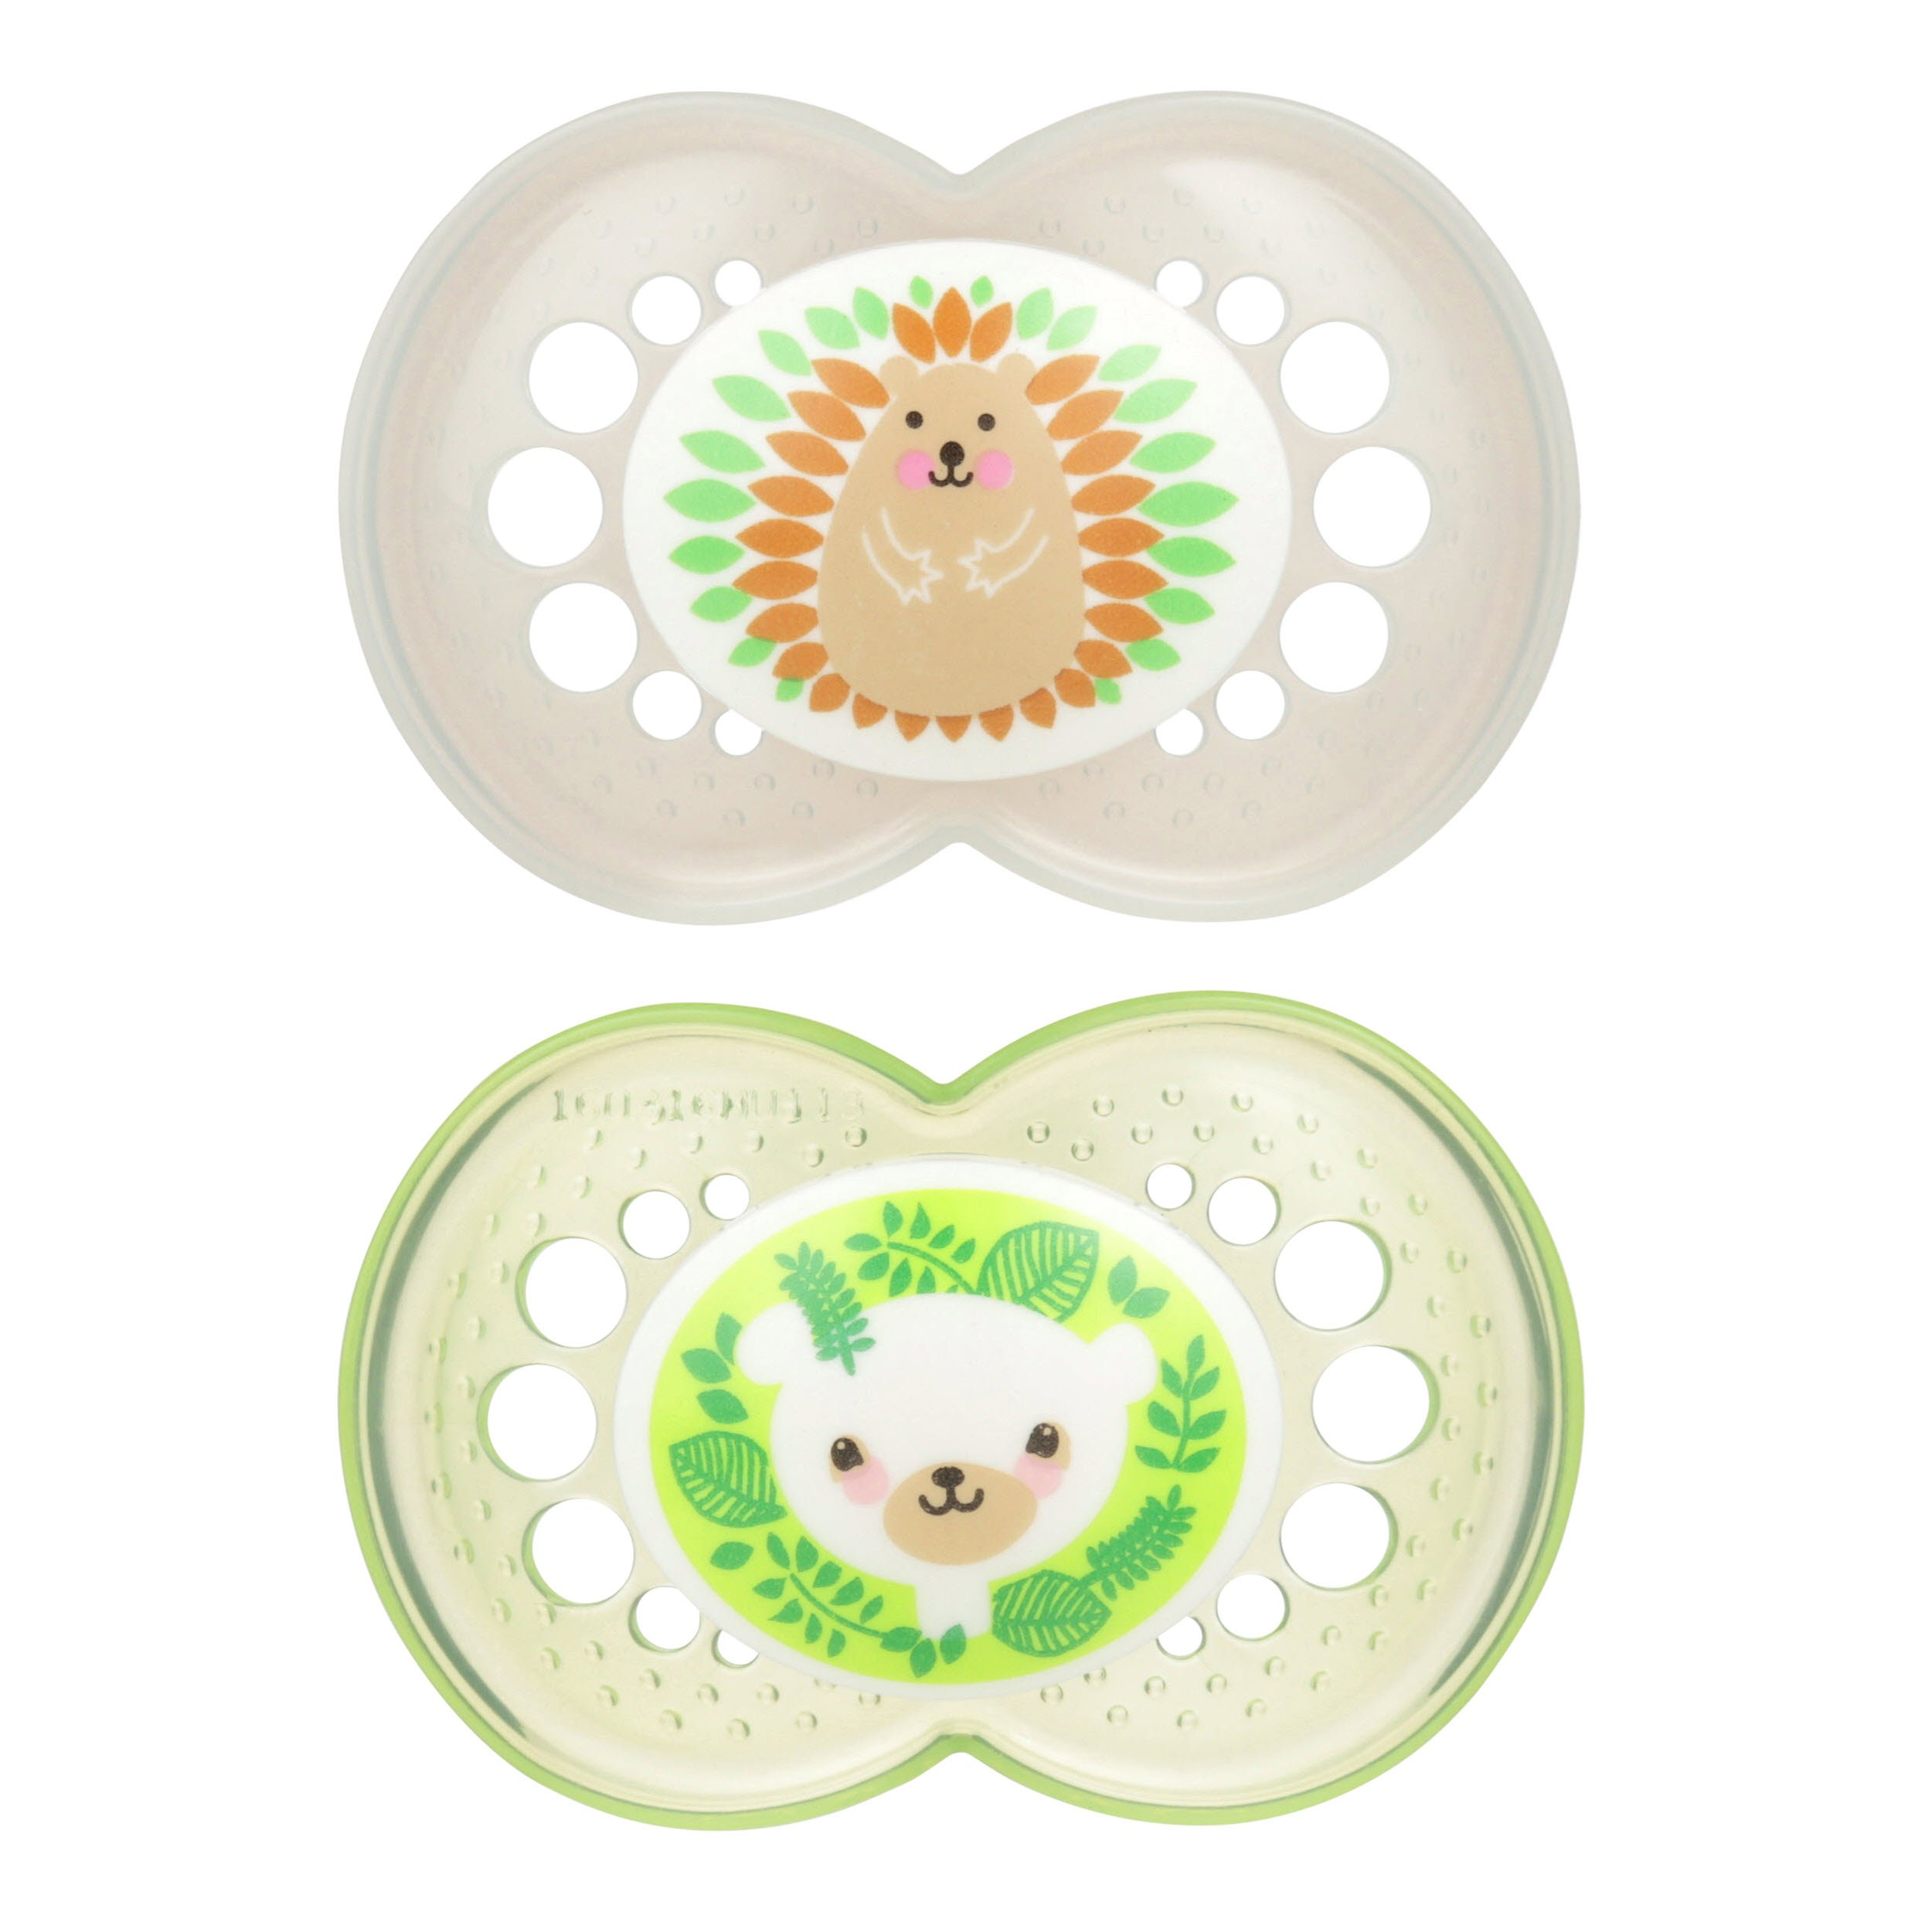 MAM Animals Orthodontic Pacifier, 2 Pack, Unisex, 6+ Months